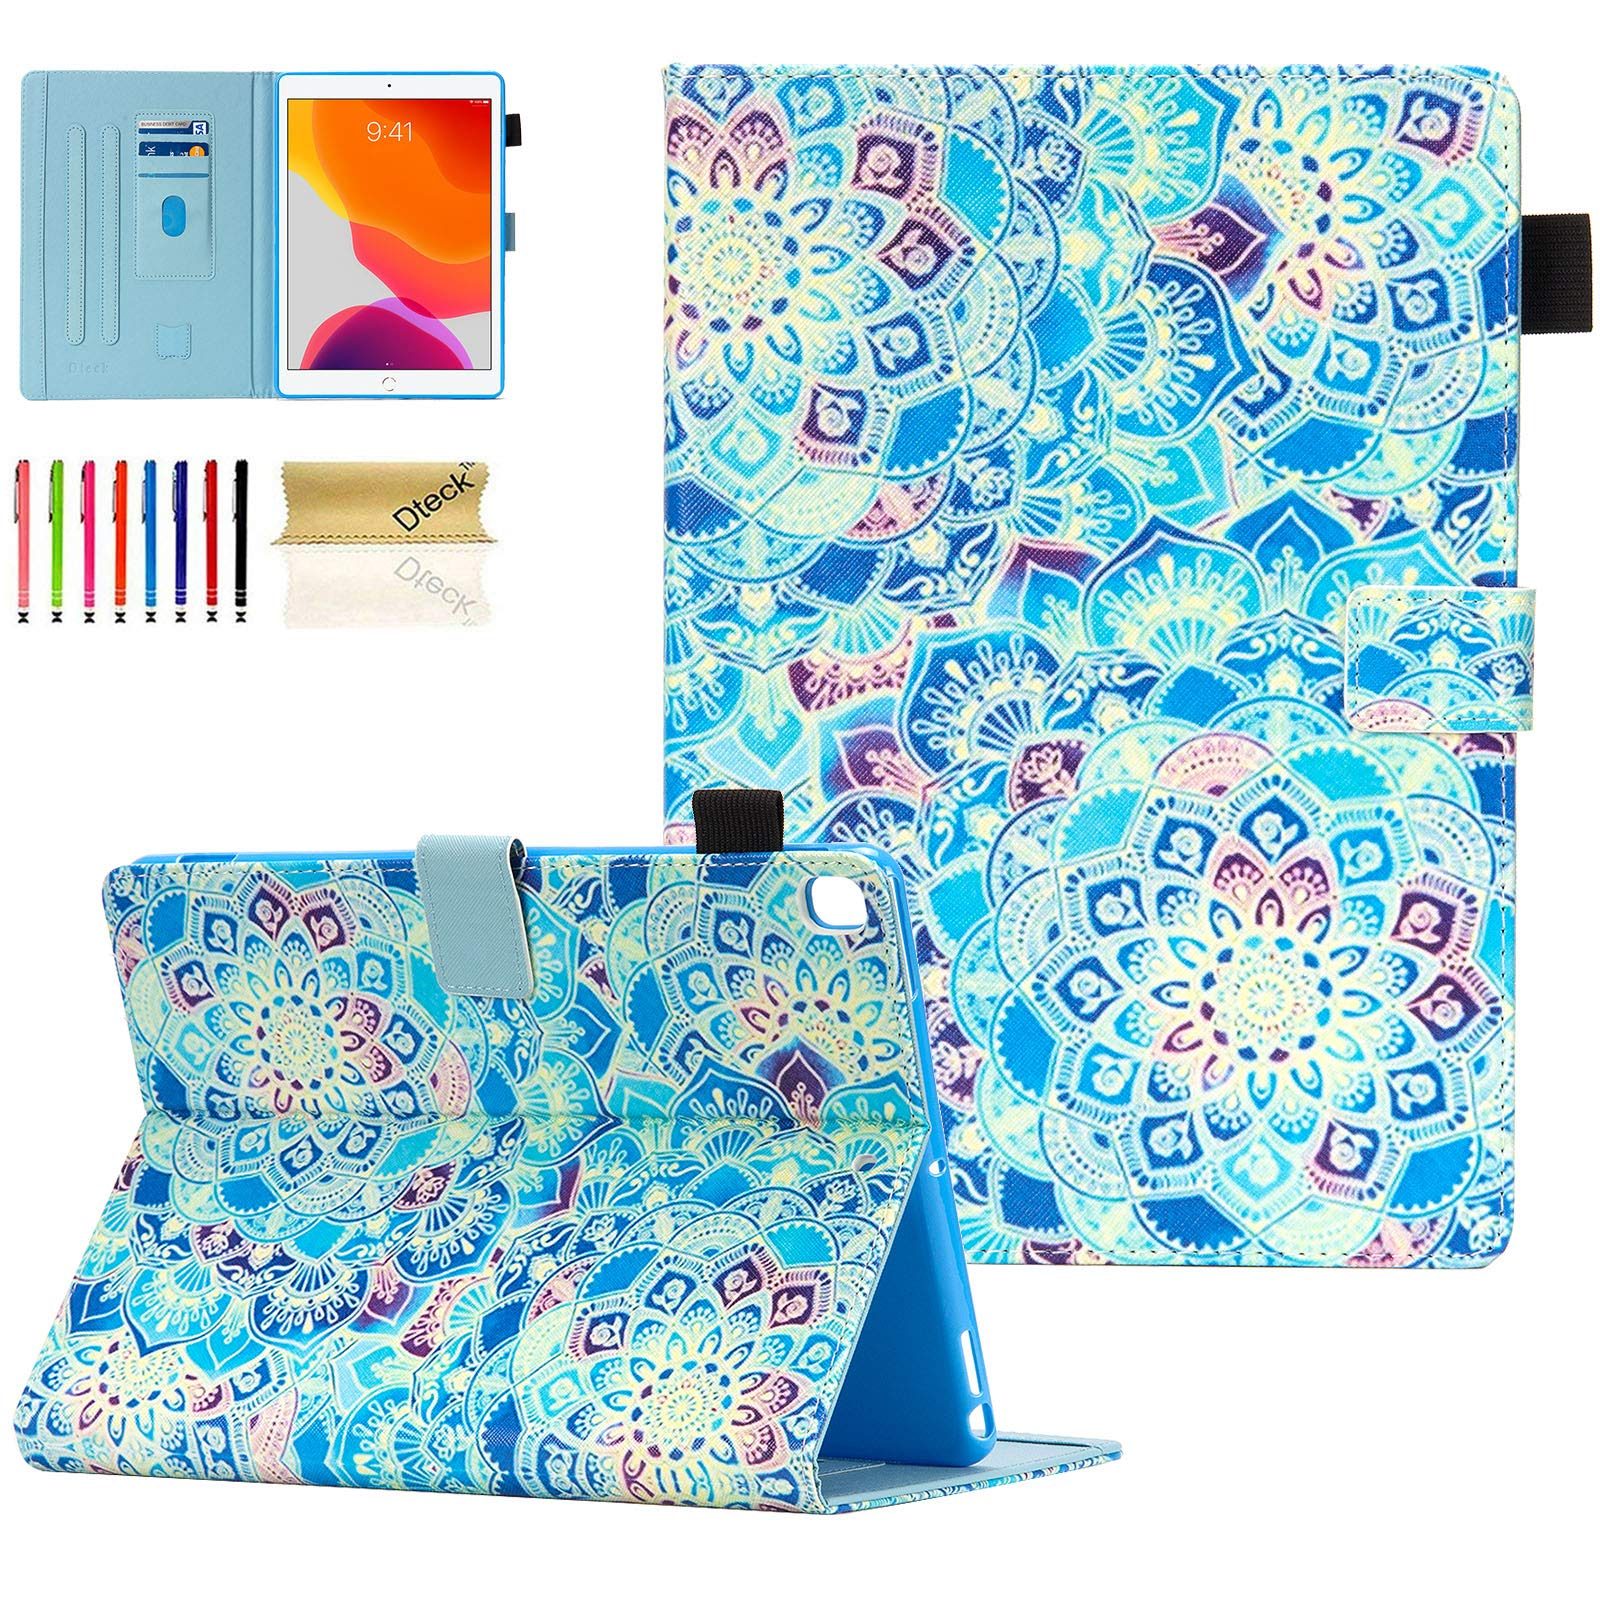 Dteck Kids Case for iPad 10.2 2019 - Slim Fit Premium PU Leather Folding Stand Smart Shockproof Cover with Pencil Holder, Auto Wake/Sleep, Wallet Pocket, Shade of Blue